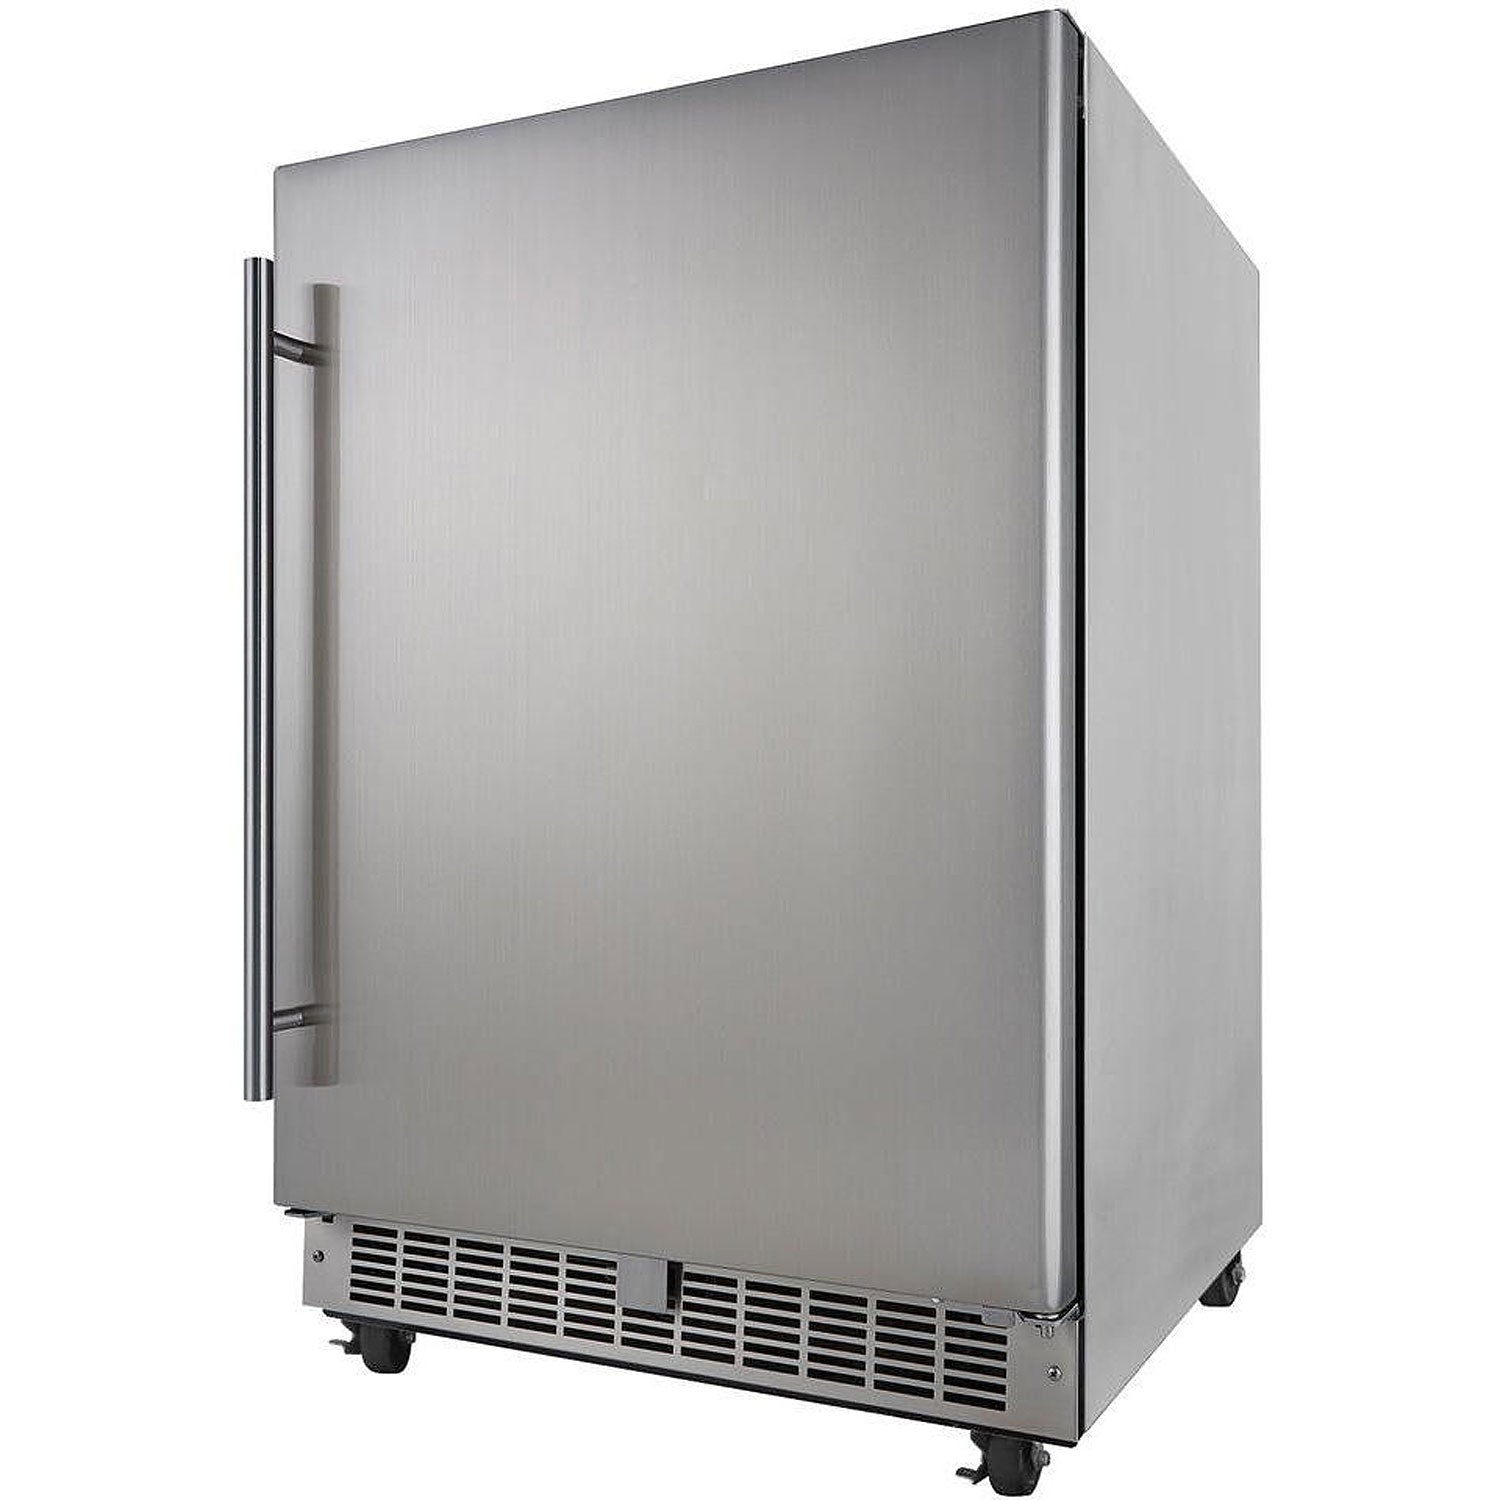 Danby Silhouette Professional Aragon 5.5 Cu. Ft. Outdoor Rated Refrigerator - Stainless Steel - Swings and More